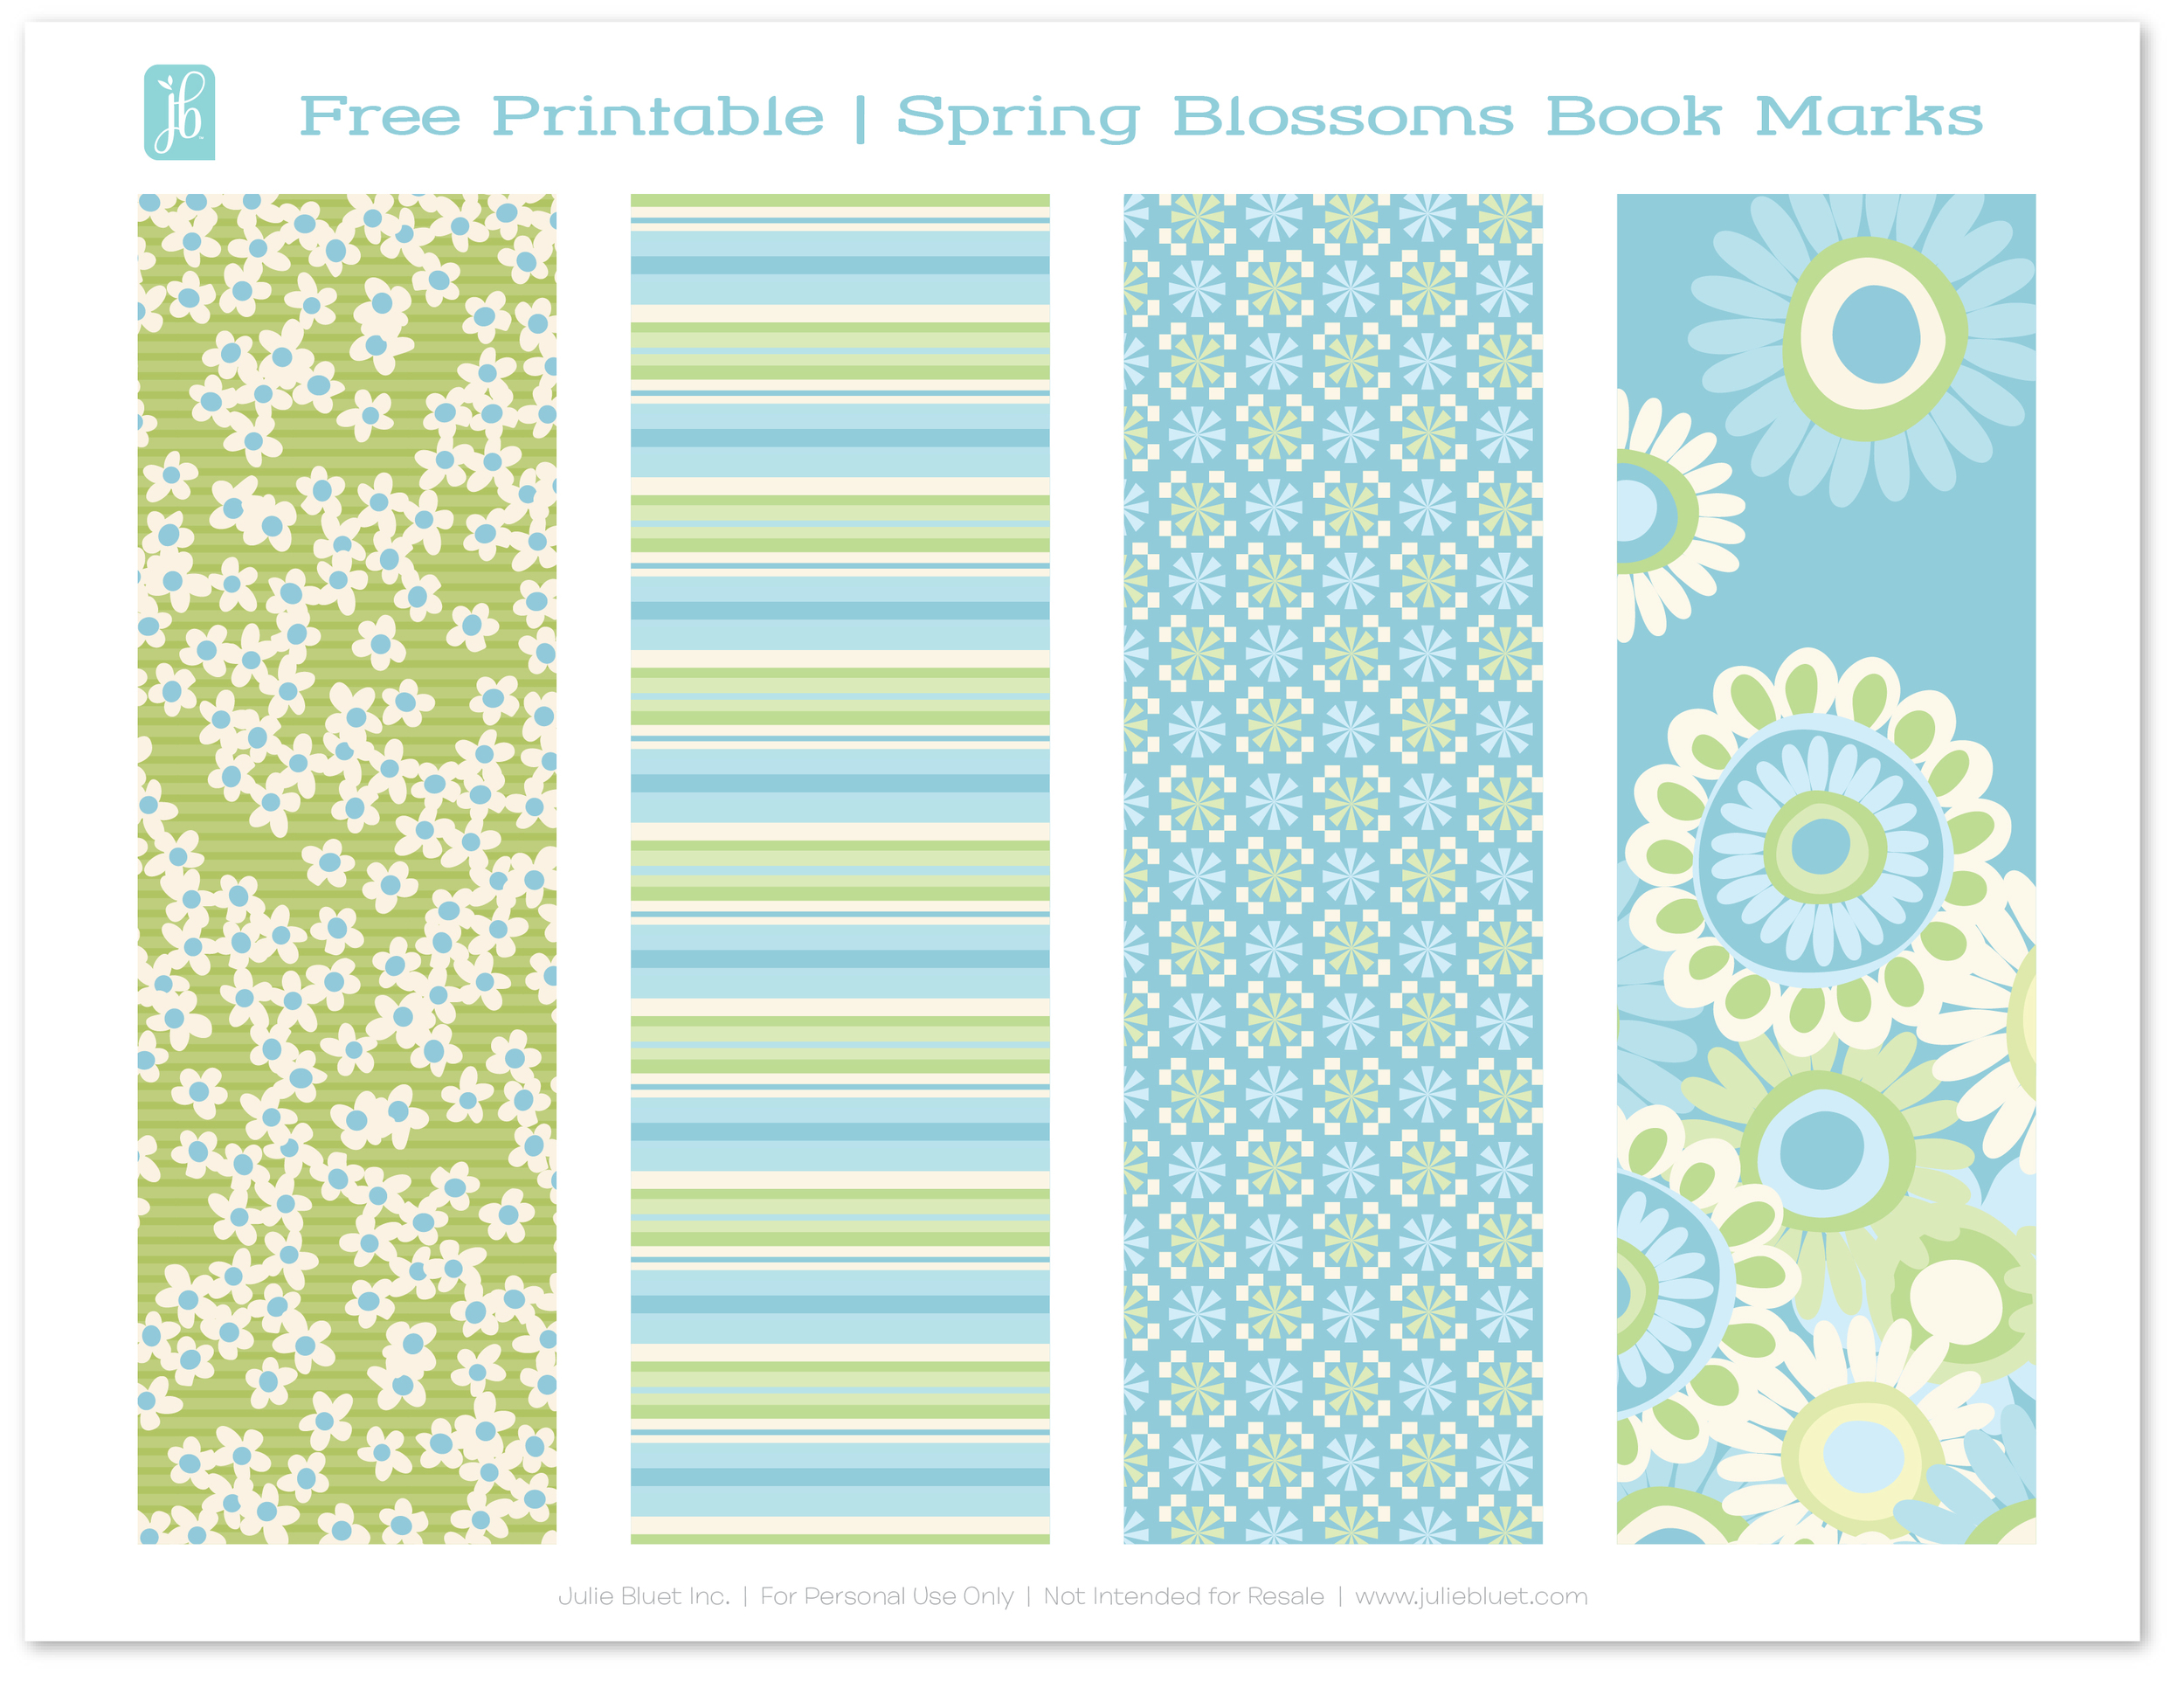 Free Printable Bookmarks for Spring